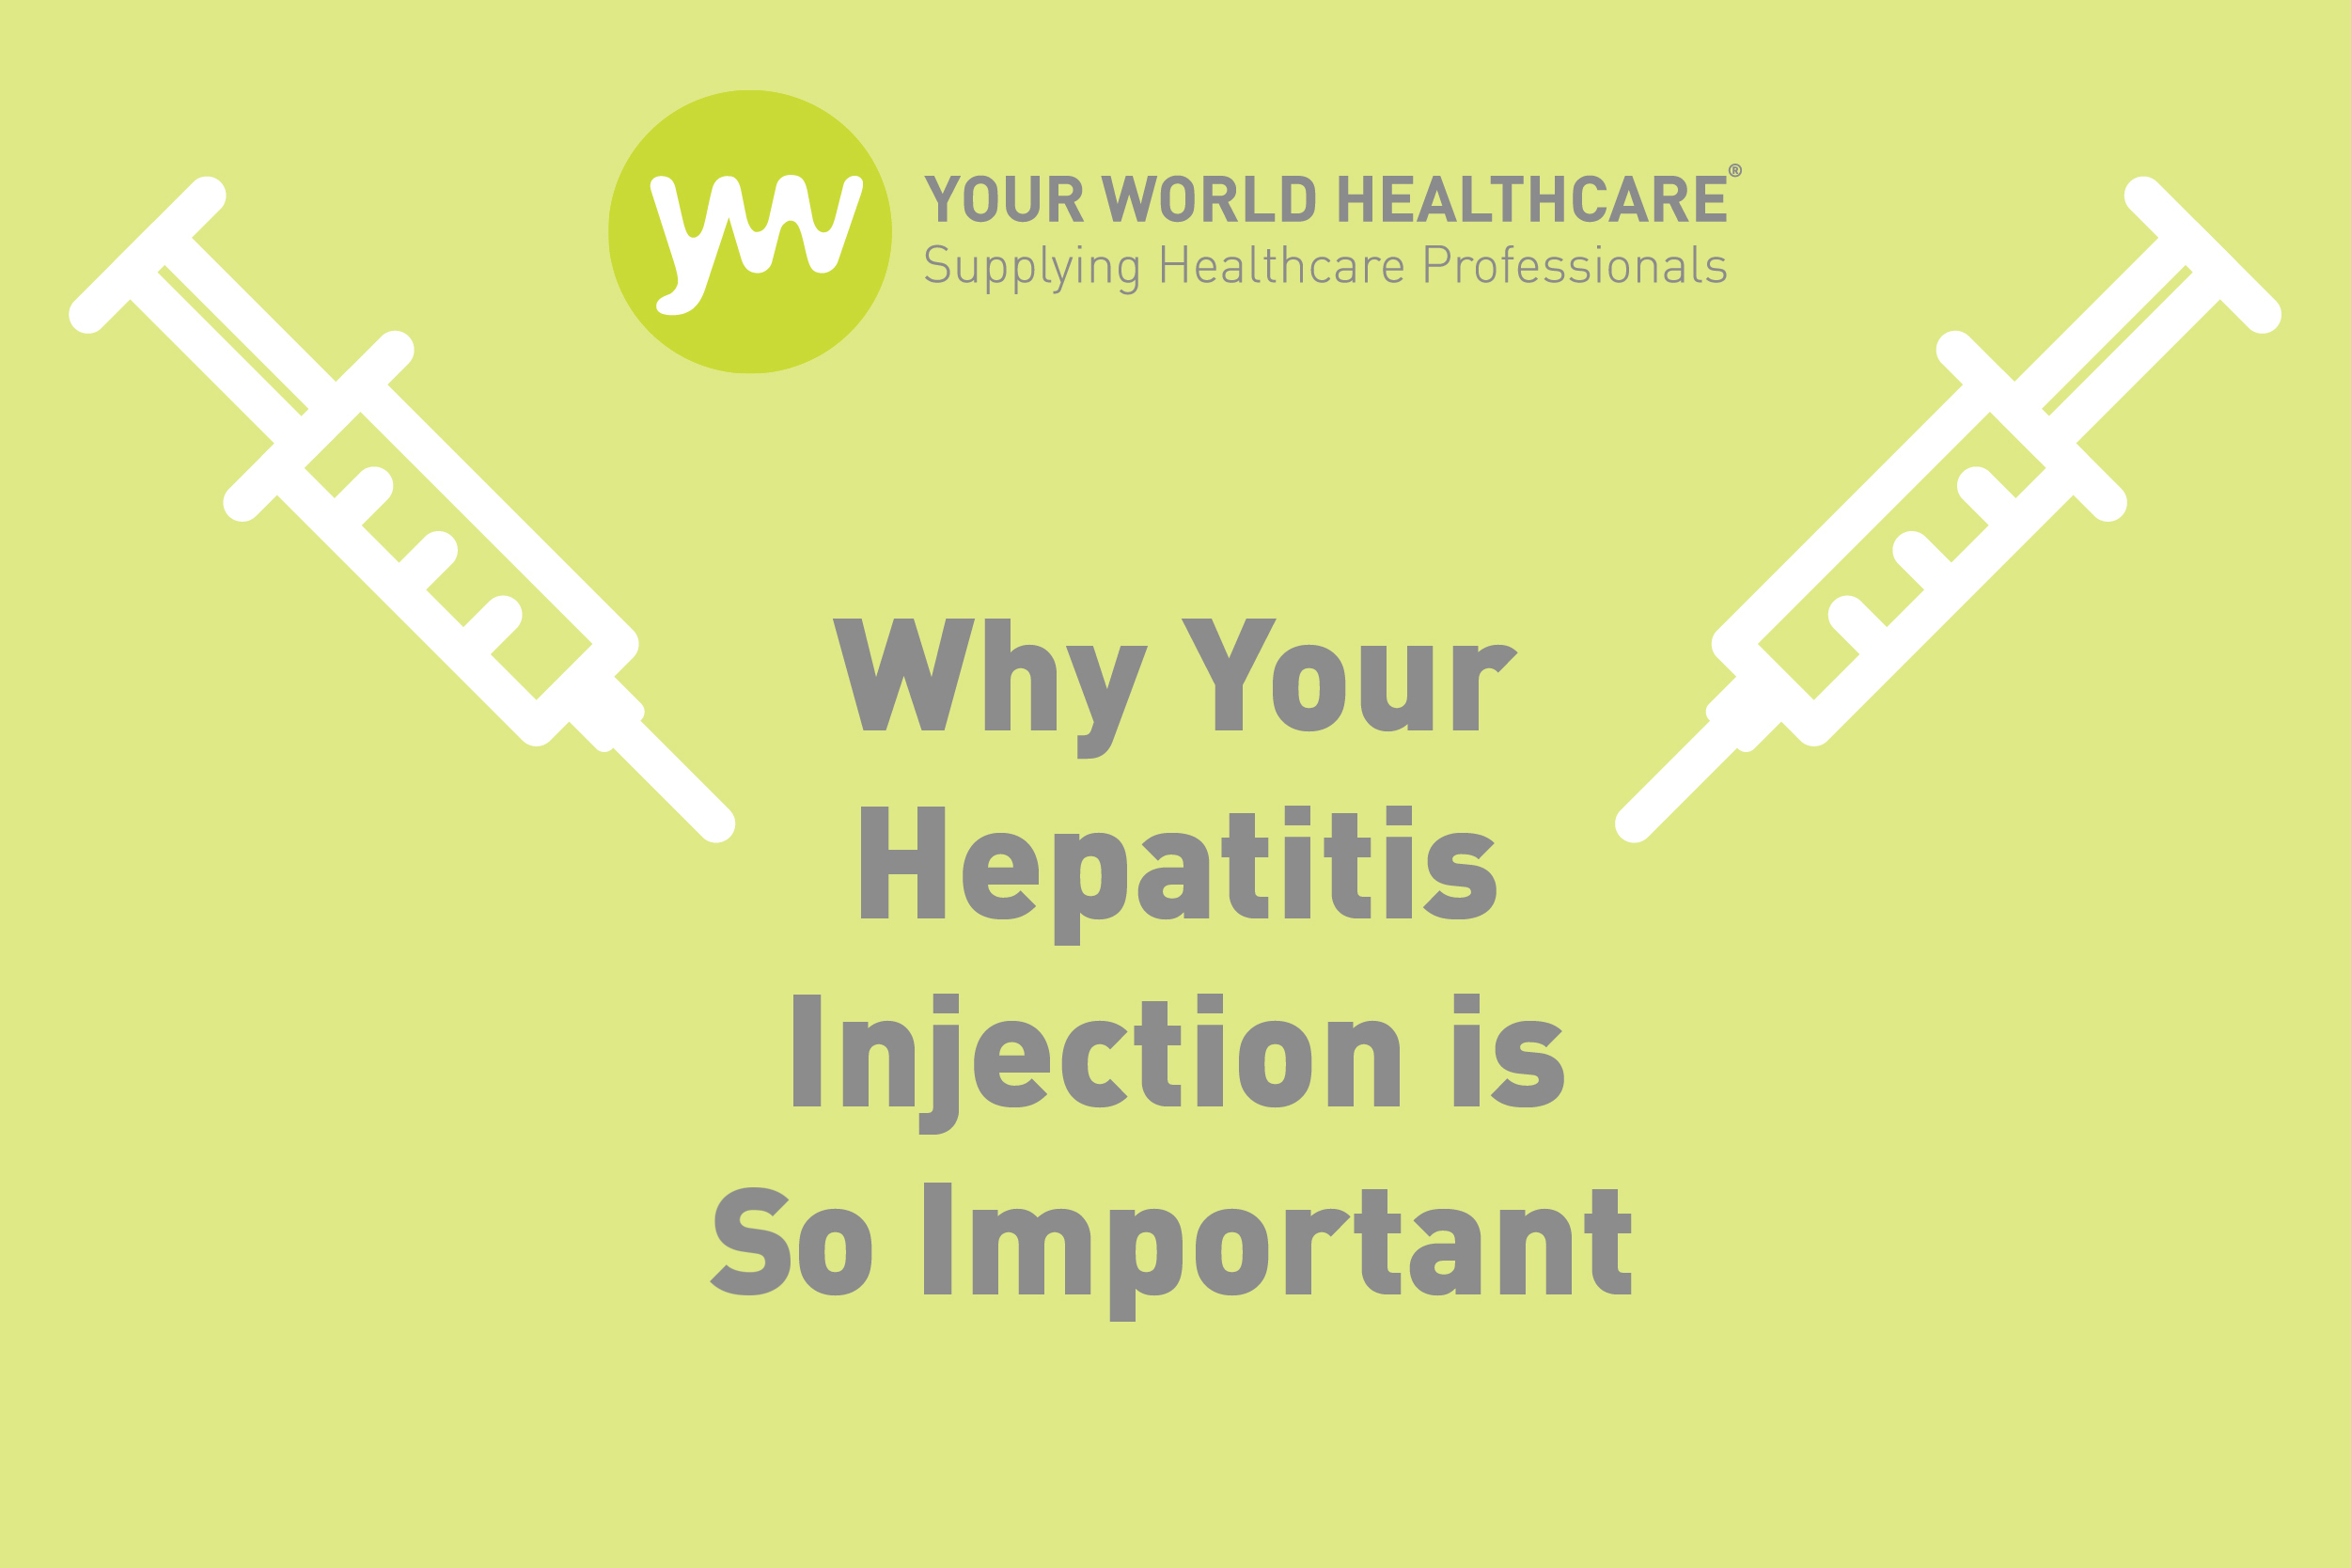 The Importance of Your Hepatitis Injection